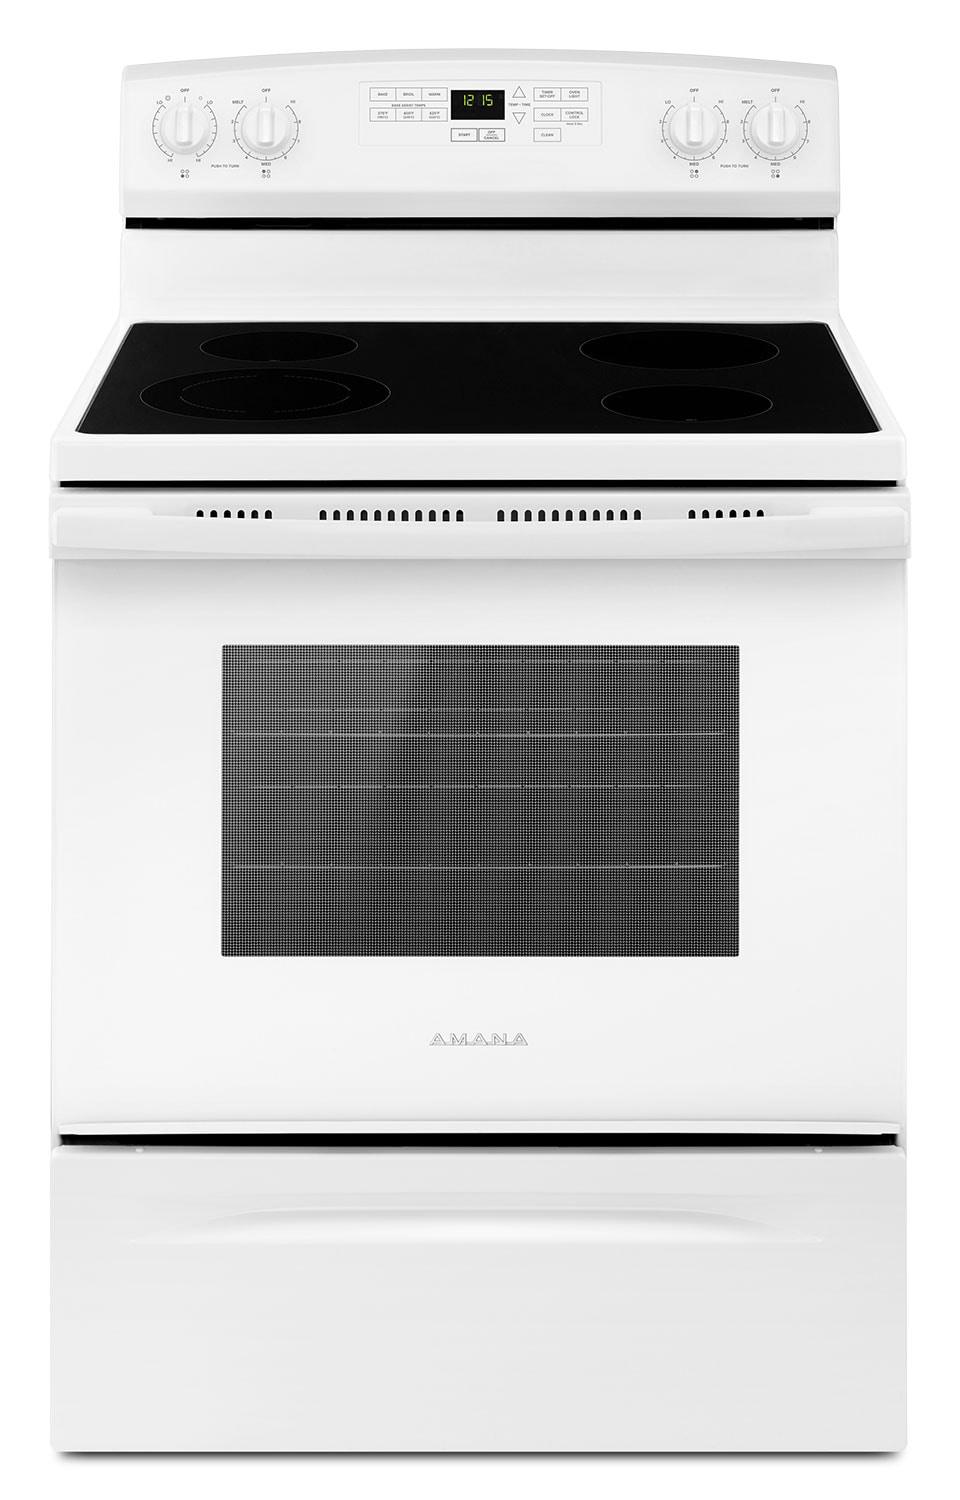 Amana 4.8 Cu. Ft. Freestanding Electric Range with Self-Clean – YAER6603SFW